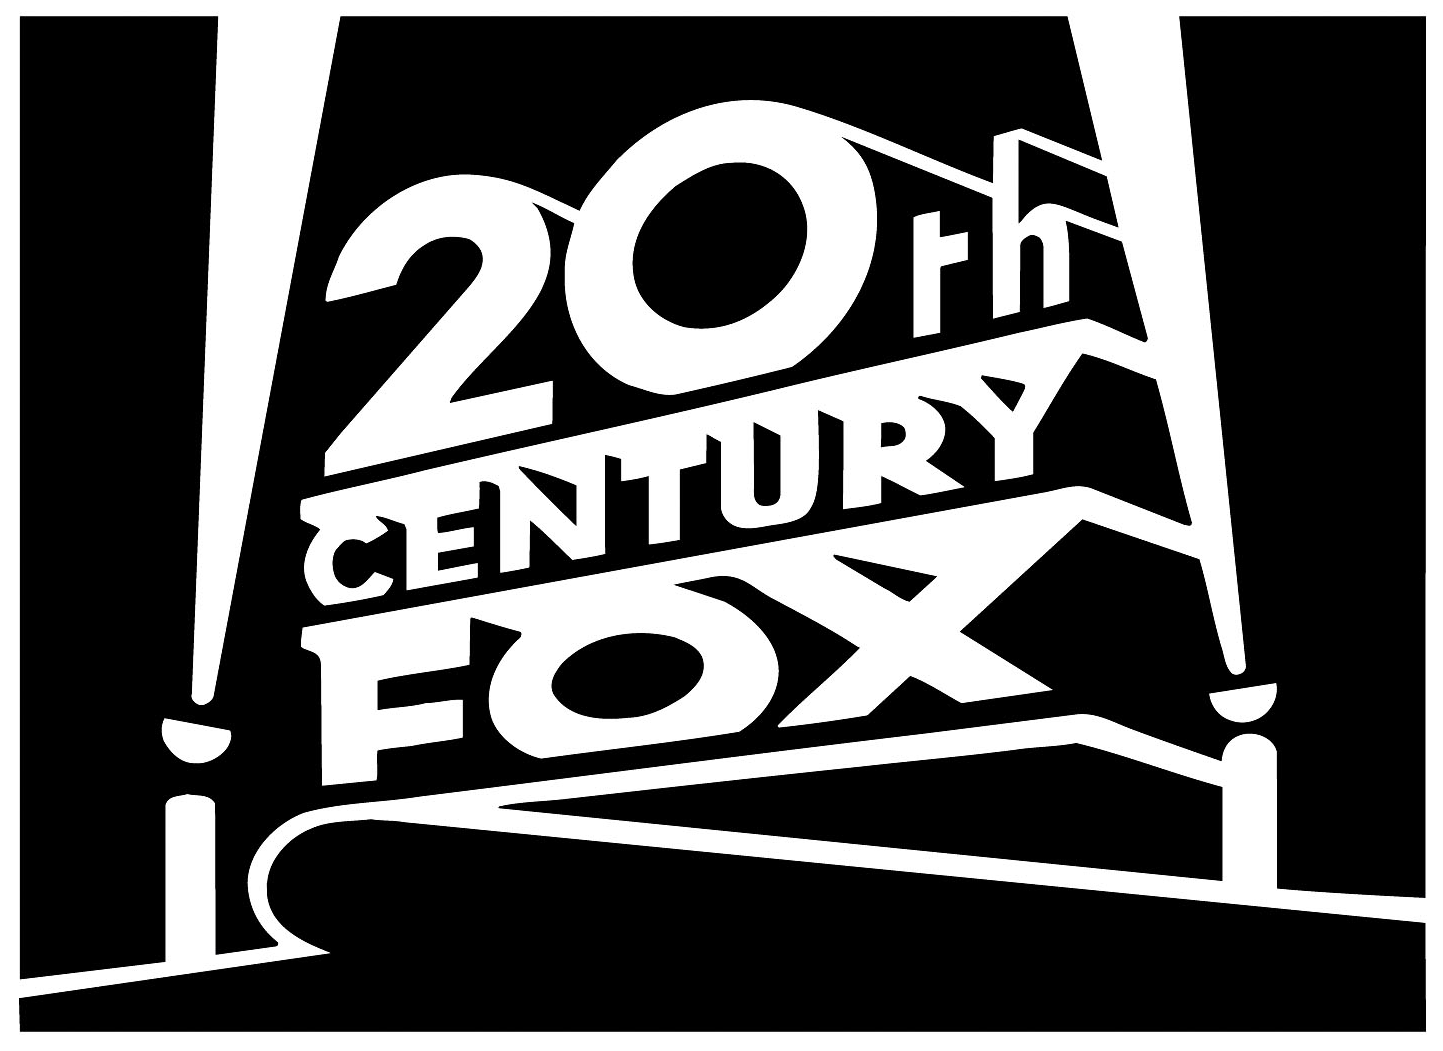 Dream Logo Variations: 20th Century Fox Goes Black and White and Gets Snowed On!